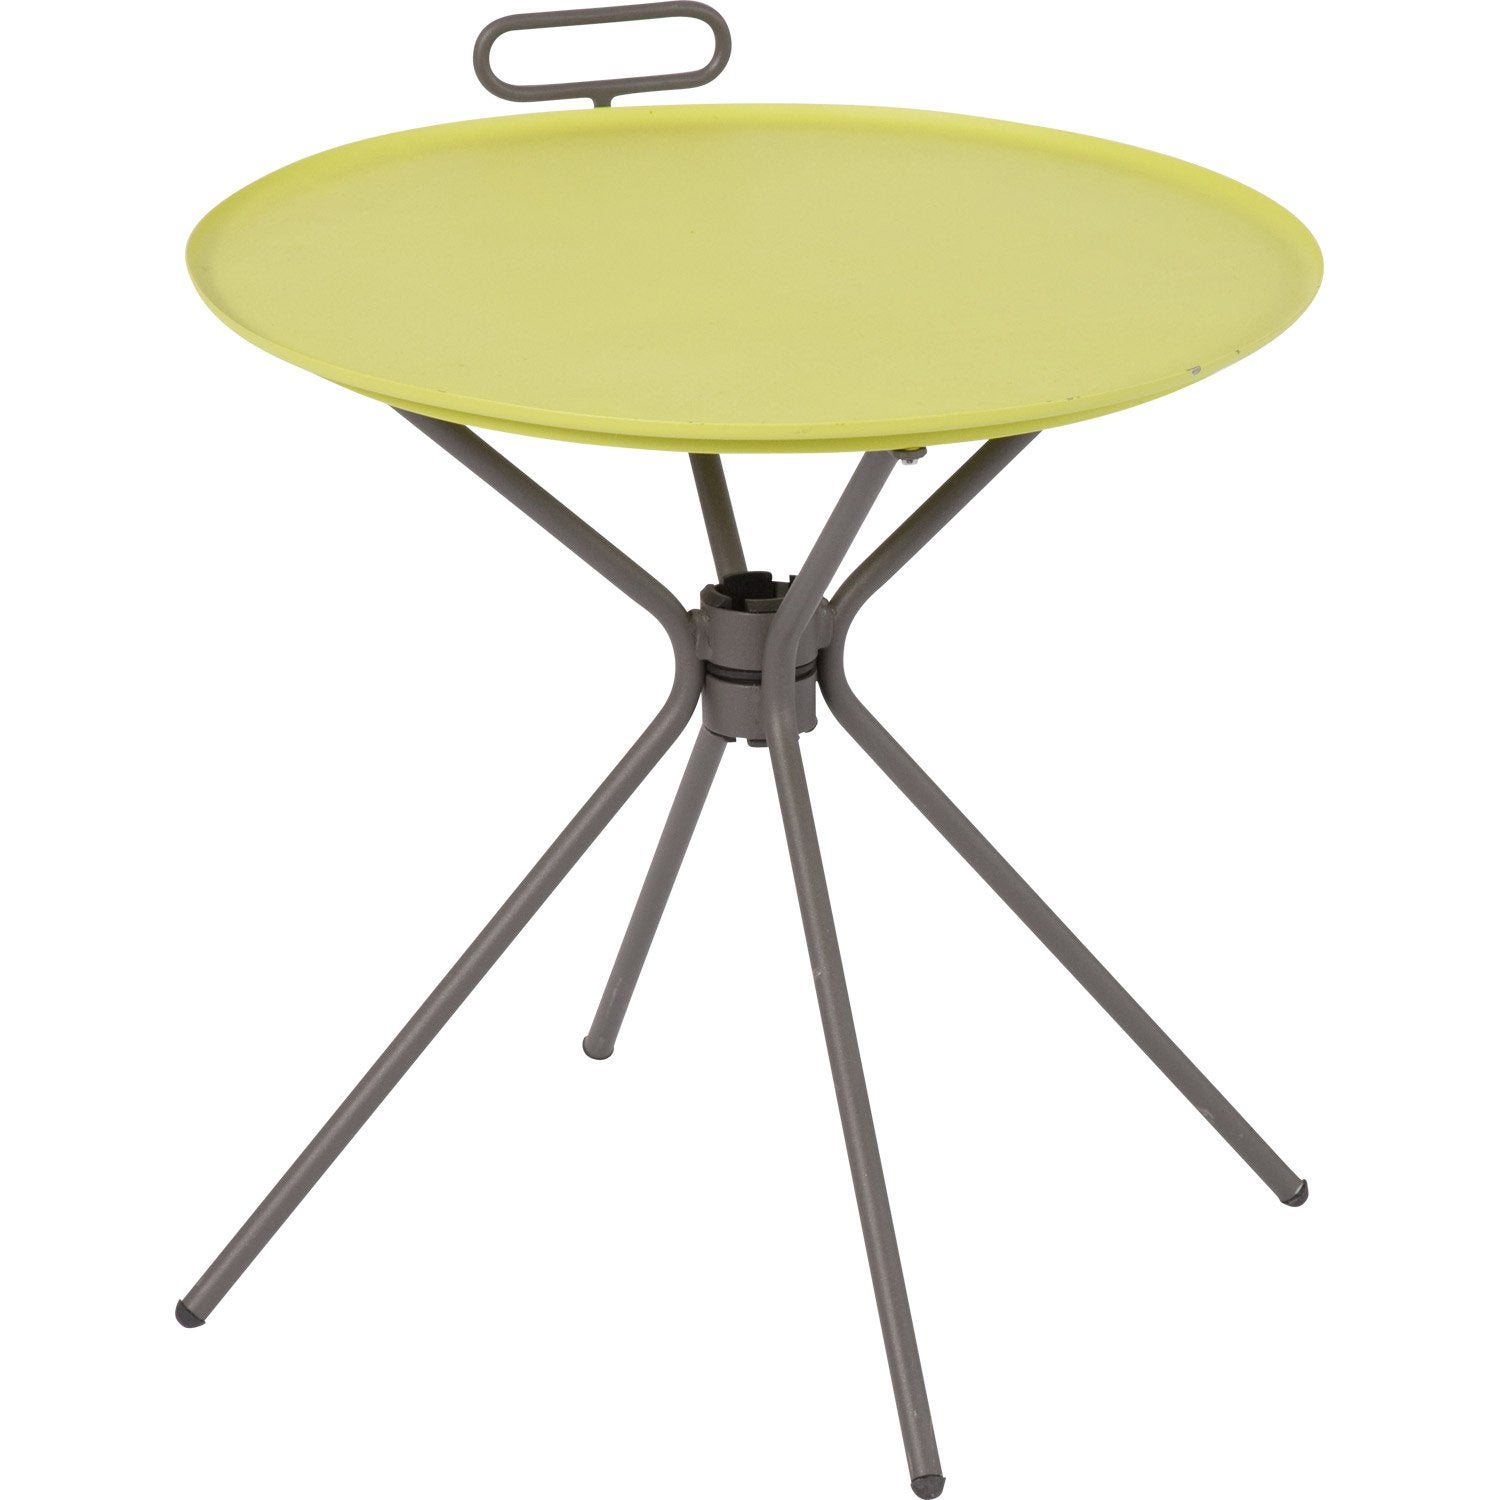 Table basse gu ridon ronde vert 2 personnes leroy merlin - Table rabattable leroy merlin ...